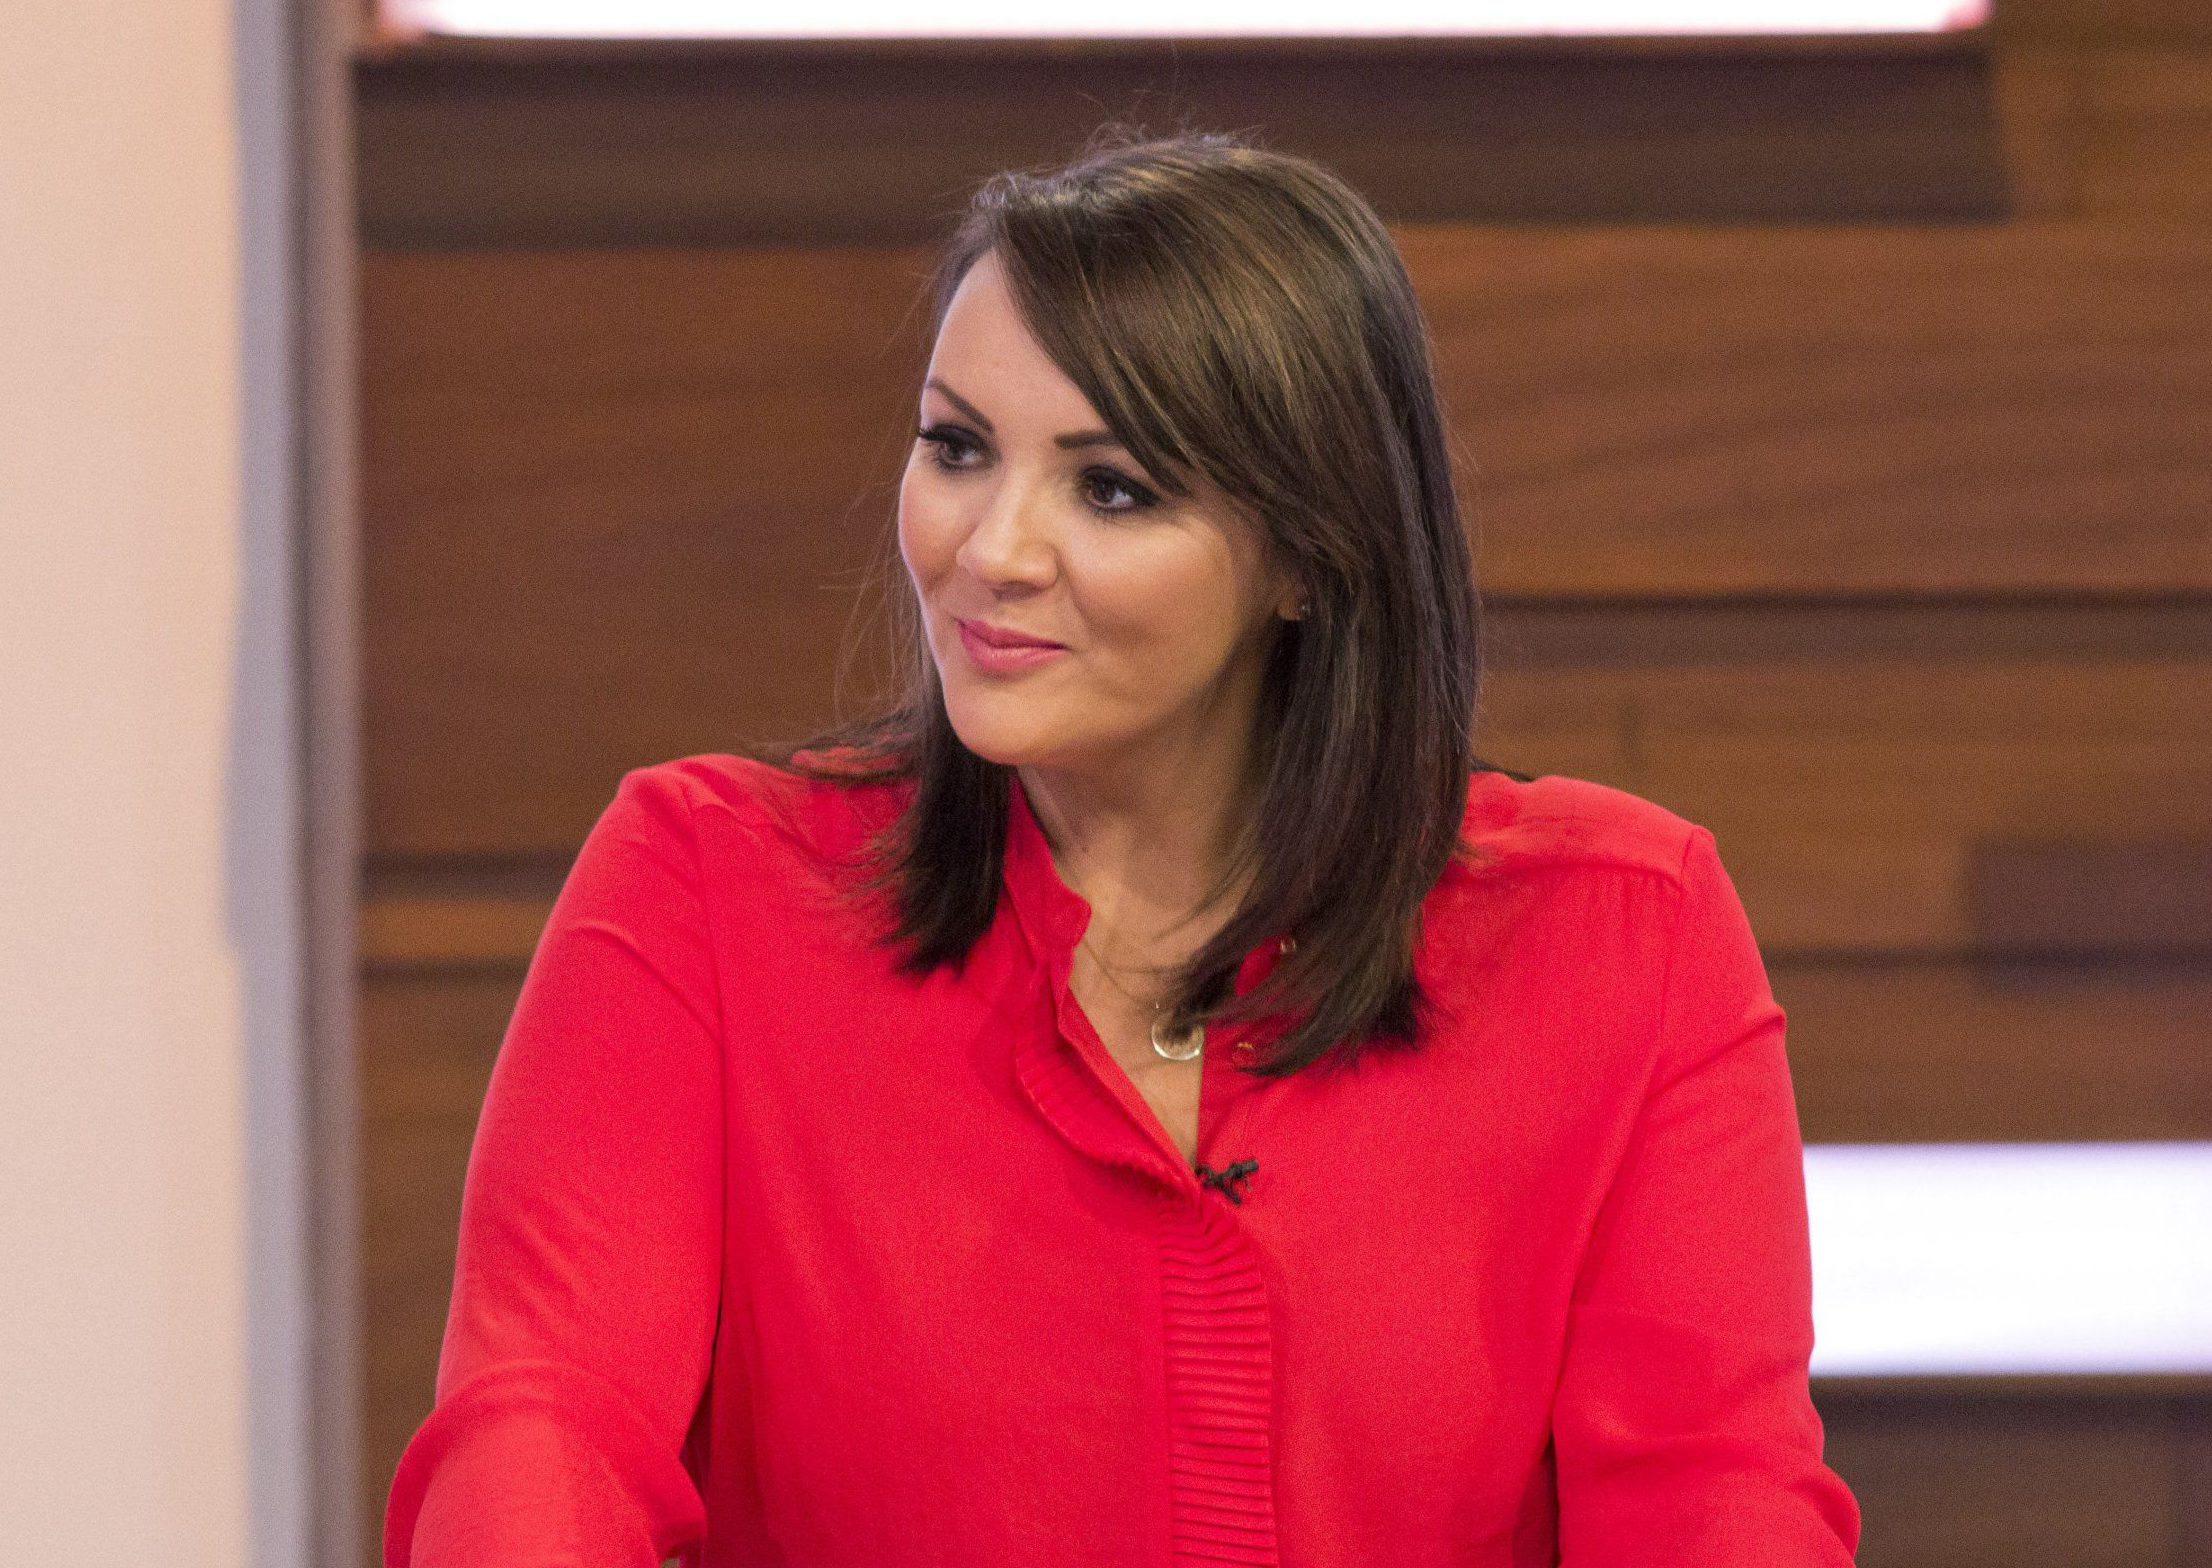 Martine McCutcheon reveals how a stalker once macheted her front door in